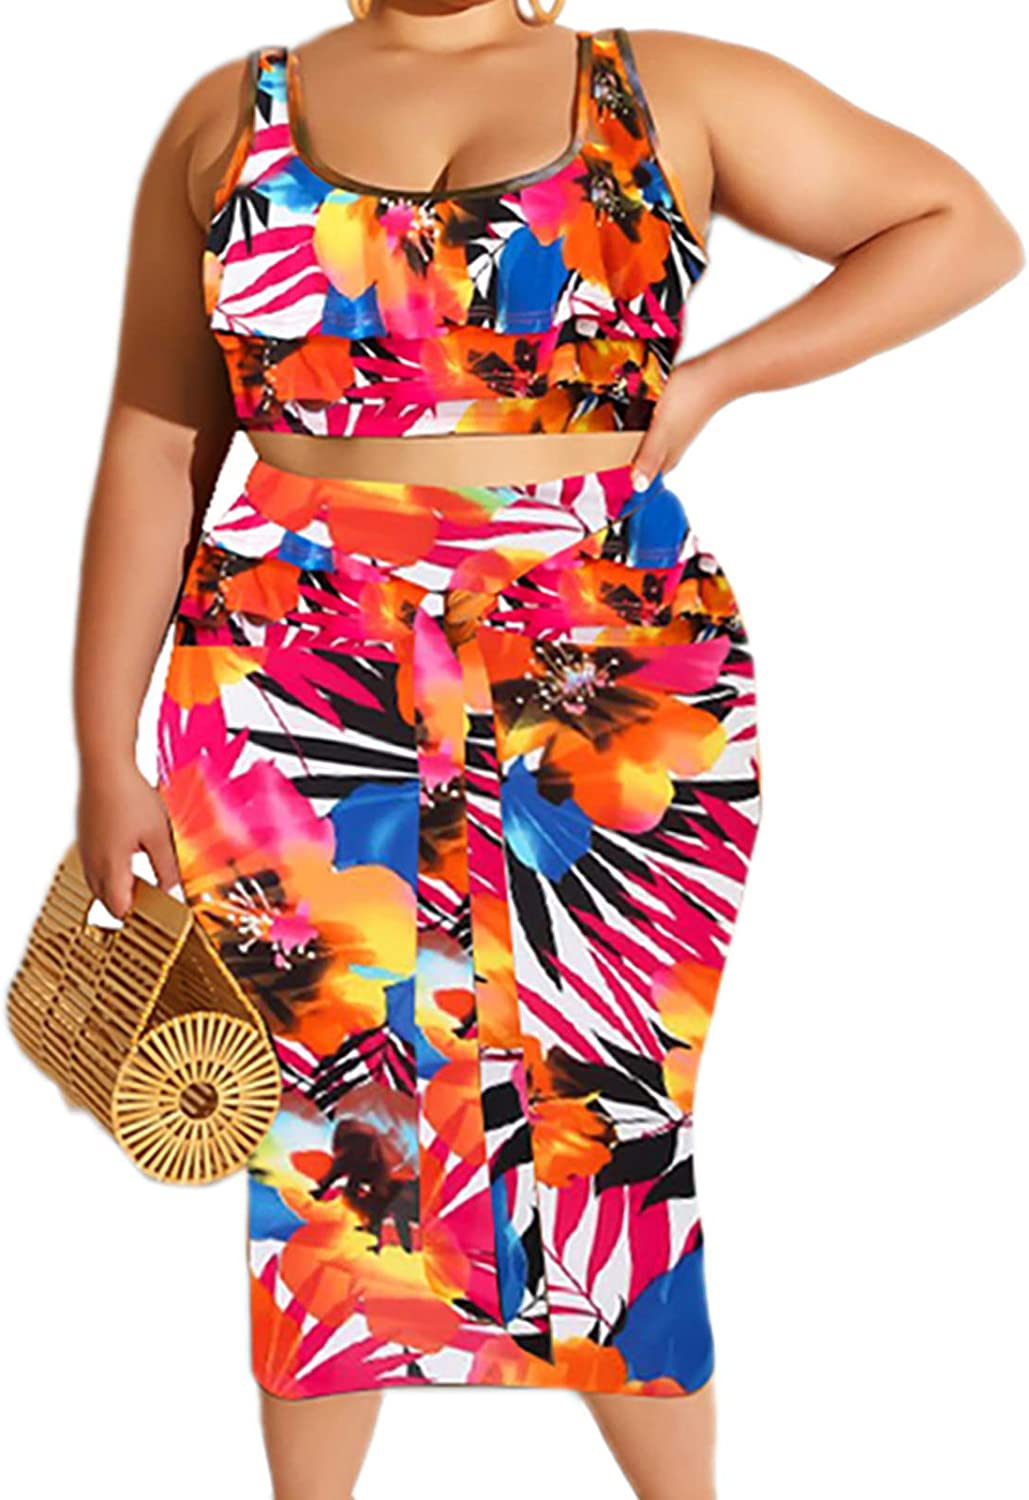 Plus Size Skirt Sets - Stretchy Two Piece Dresses Bodycon Tanks Crop Top + Bandage Midi Skirt Suits